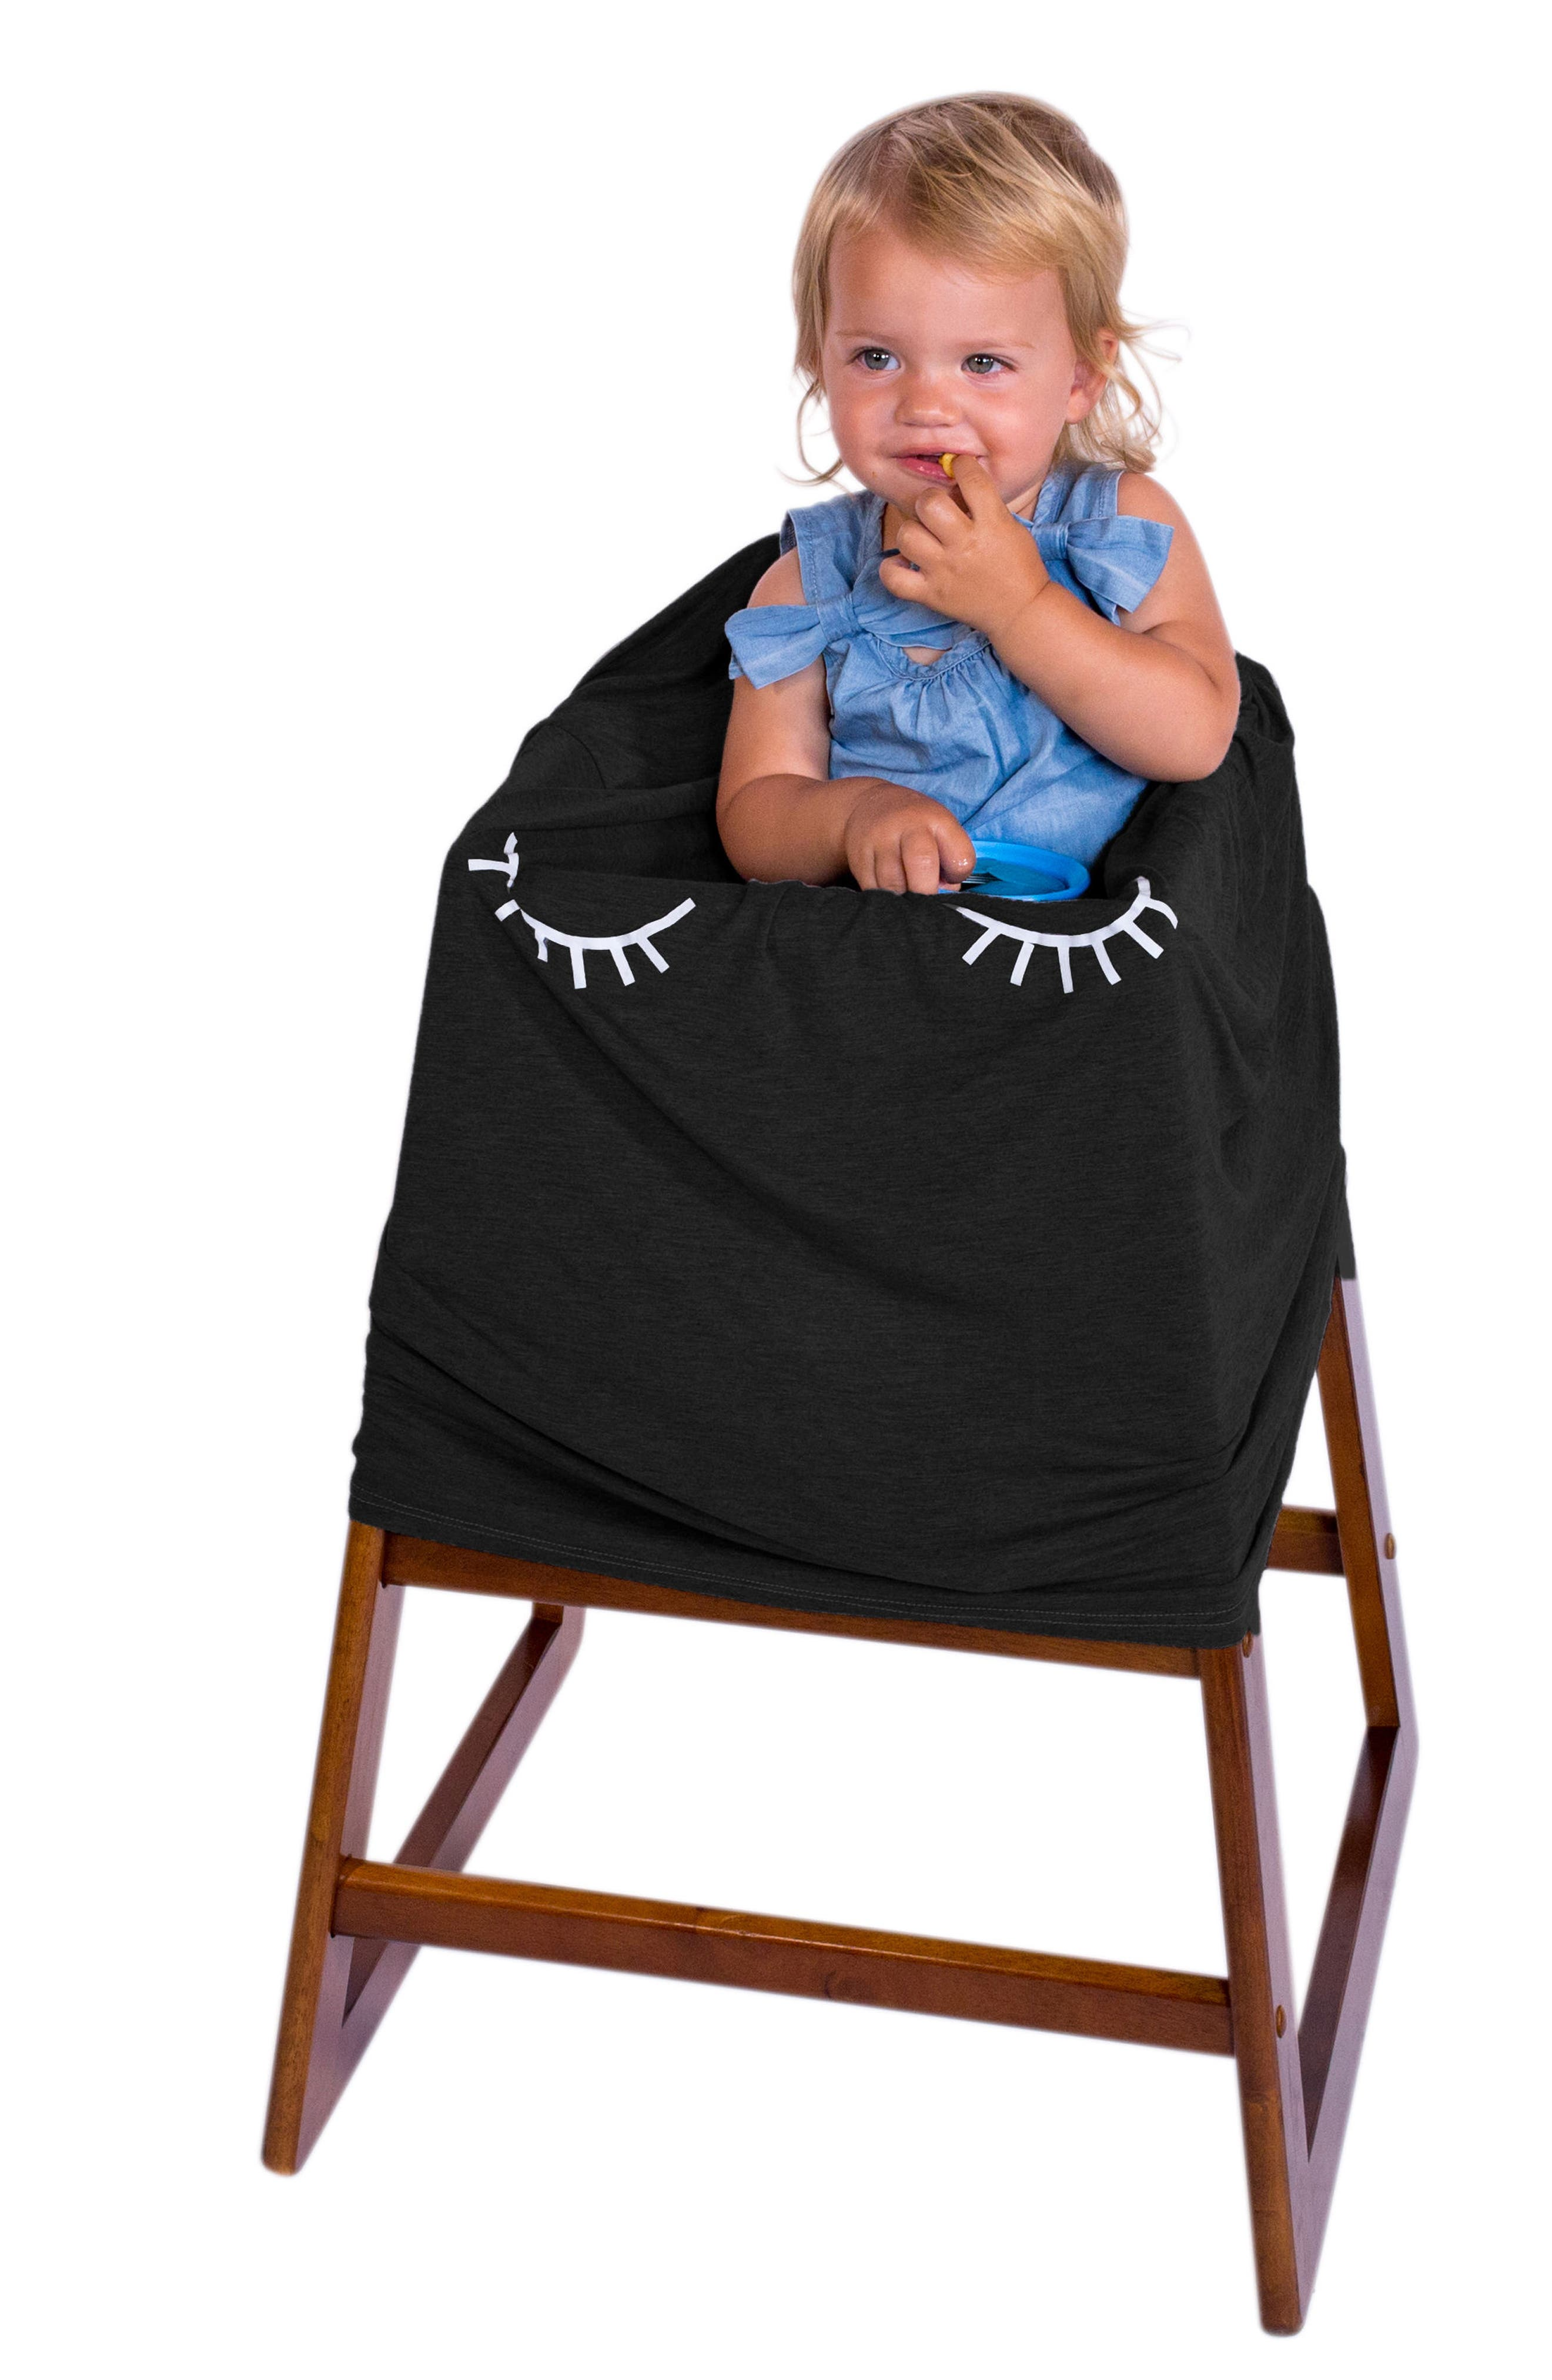 5-in-1 Car Seat Cover,                             Alternate thumbnail 8, color,                             Black Lashes